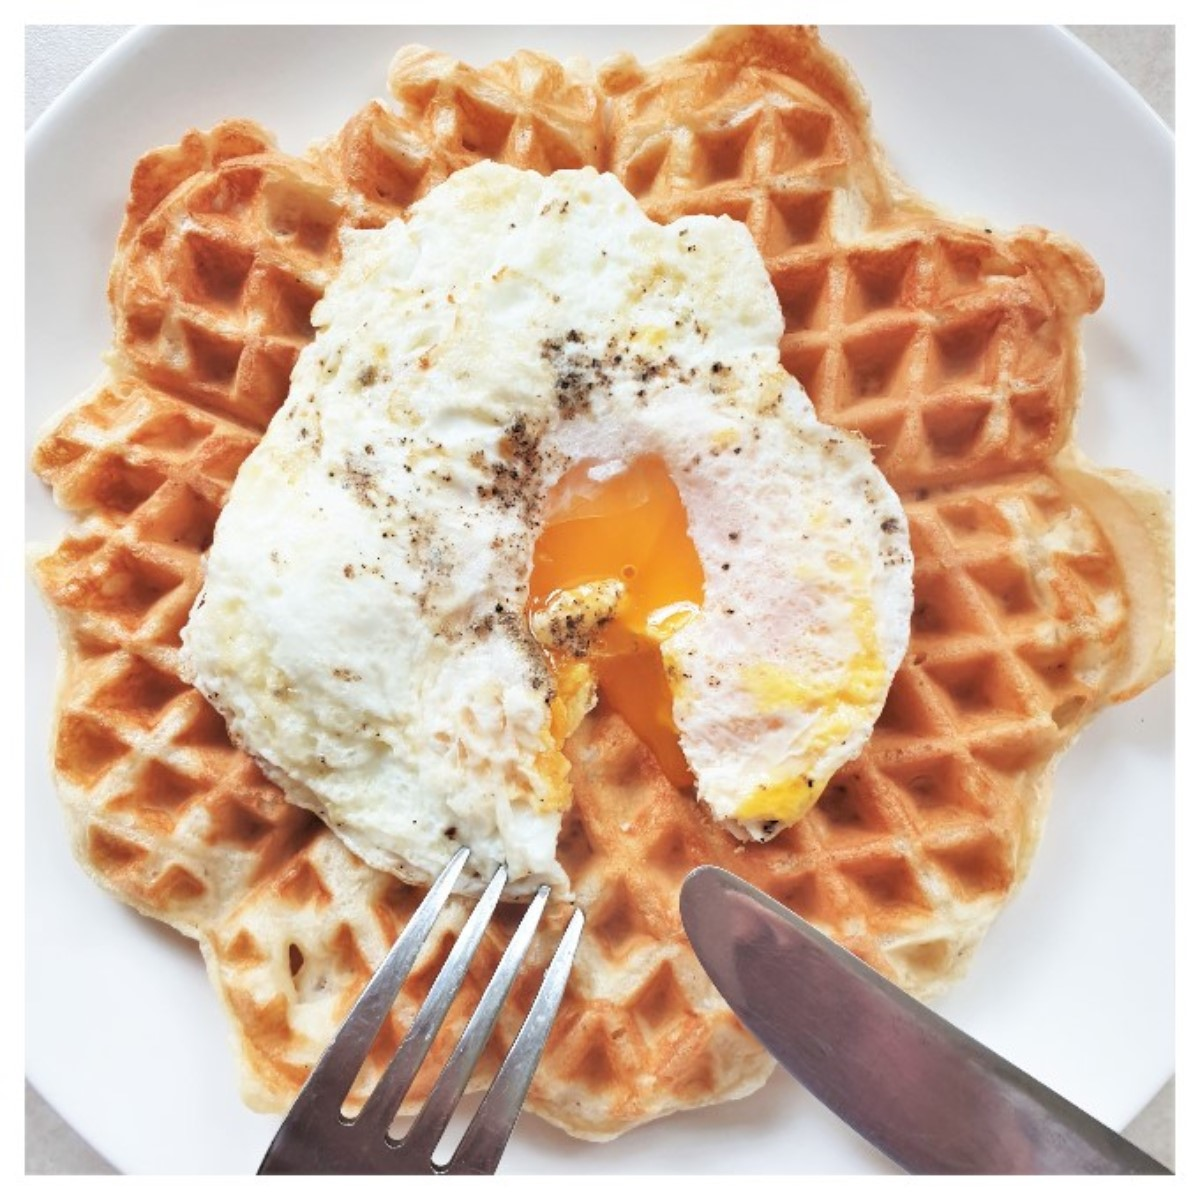 A fried egg with a runny yolk on a waffle.